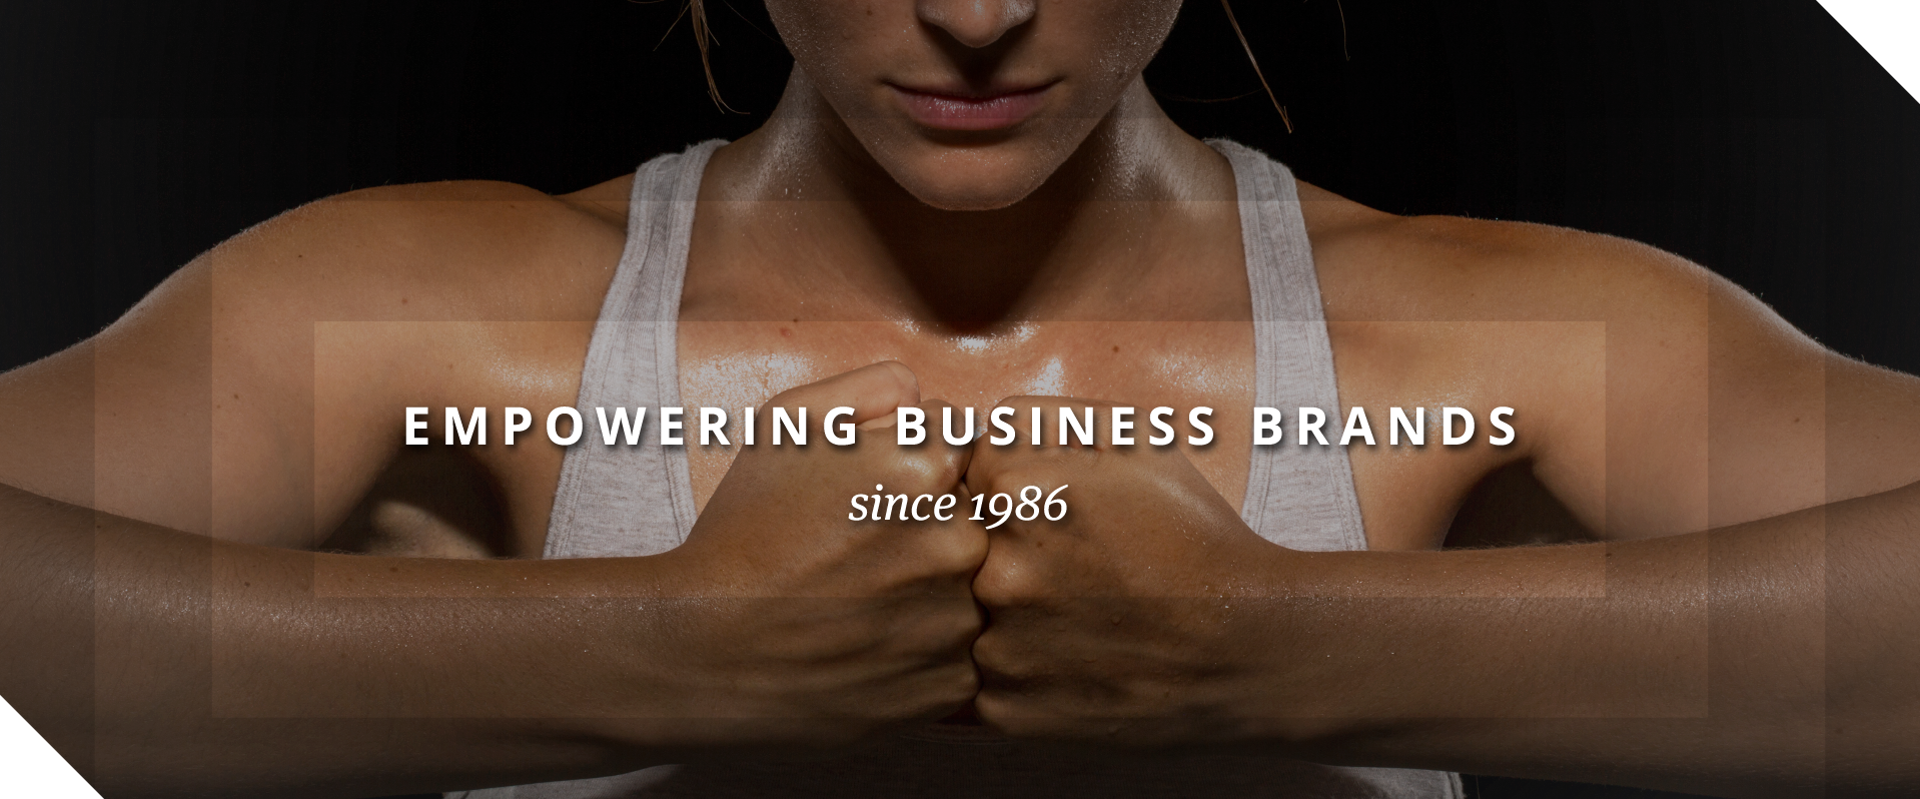 Empowering business brands since 1986